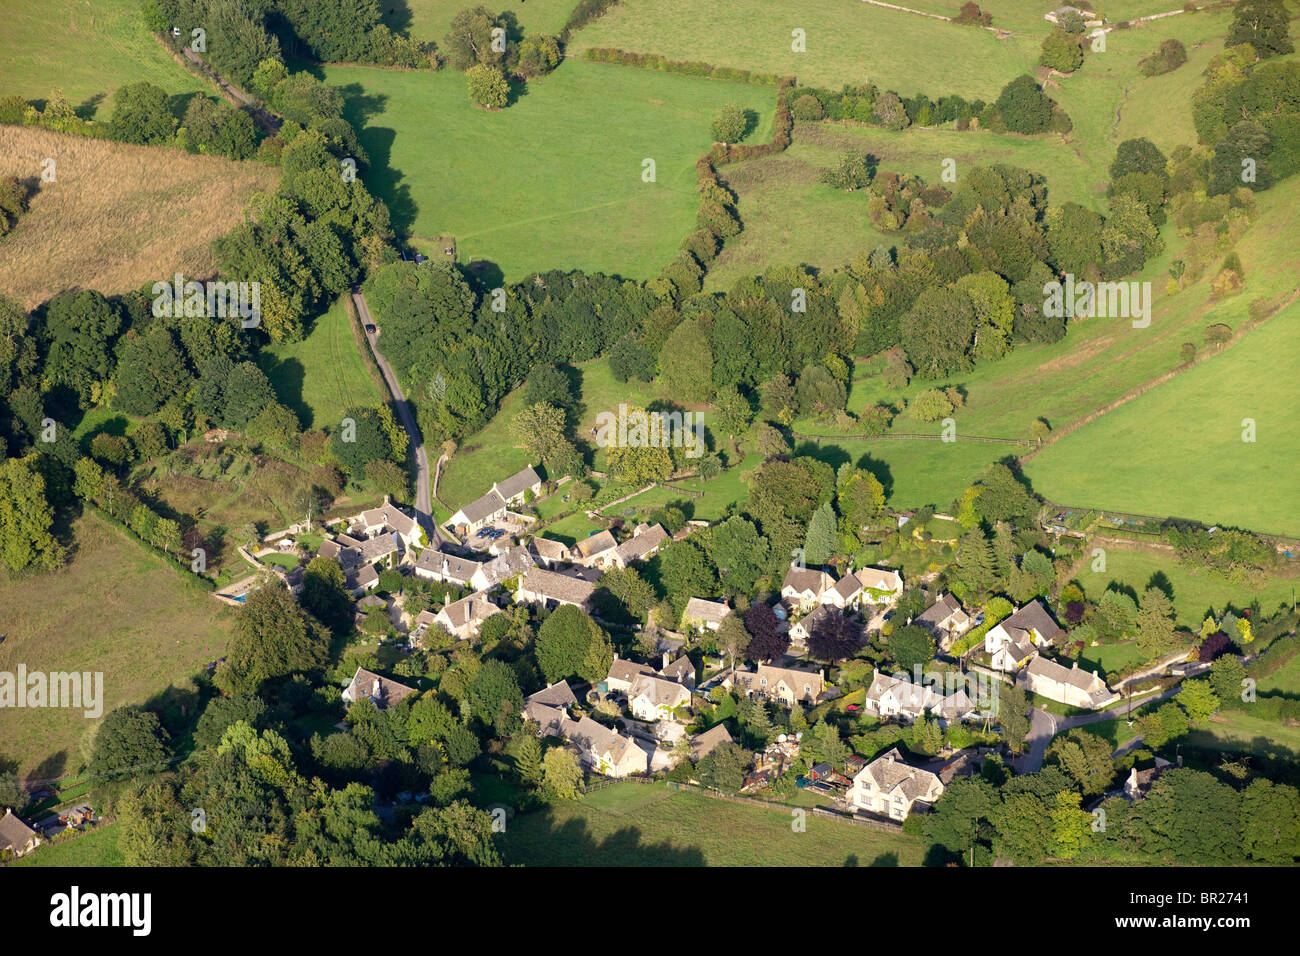 An aerial view of the Cotswold village of Duntisbourne Leer, Gloucestershire from the west. - Stock Image